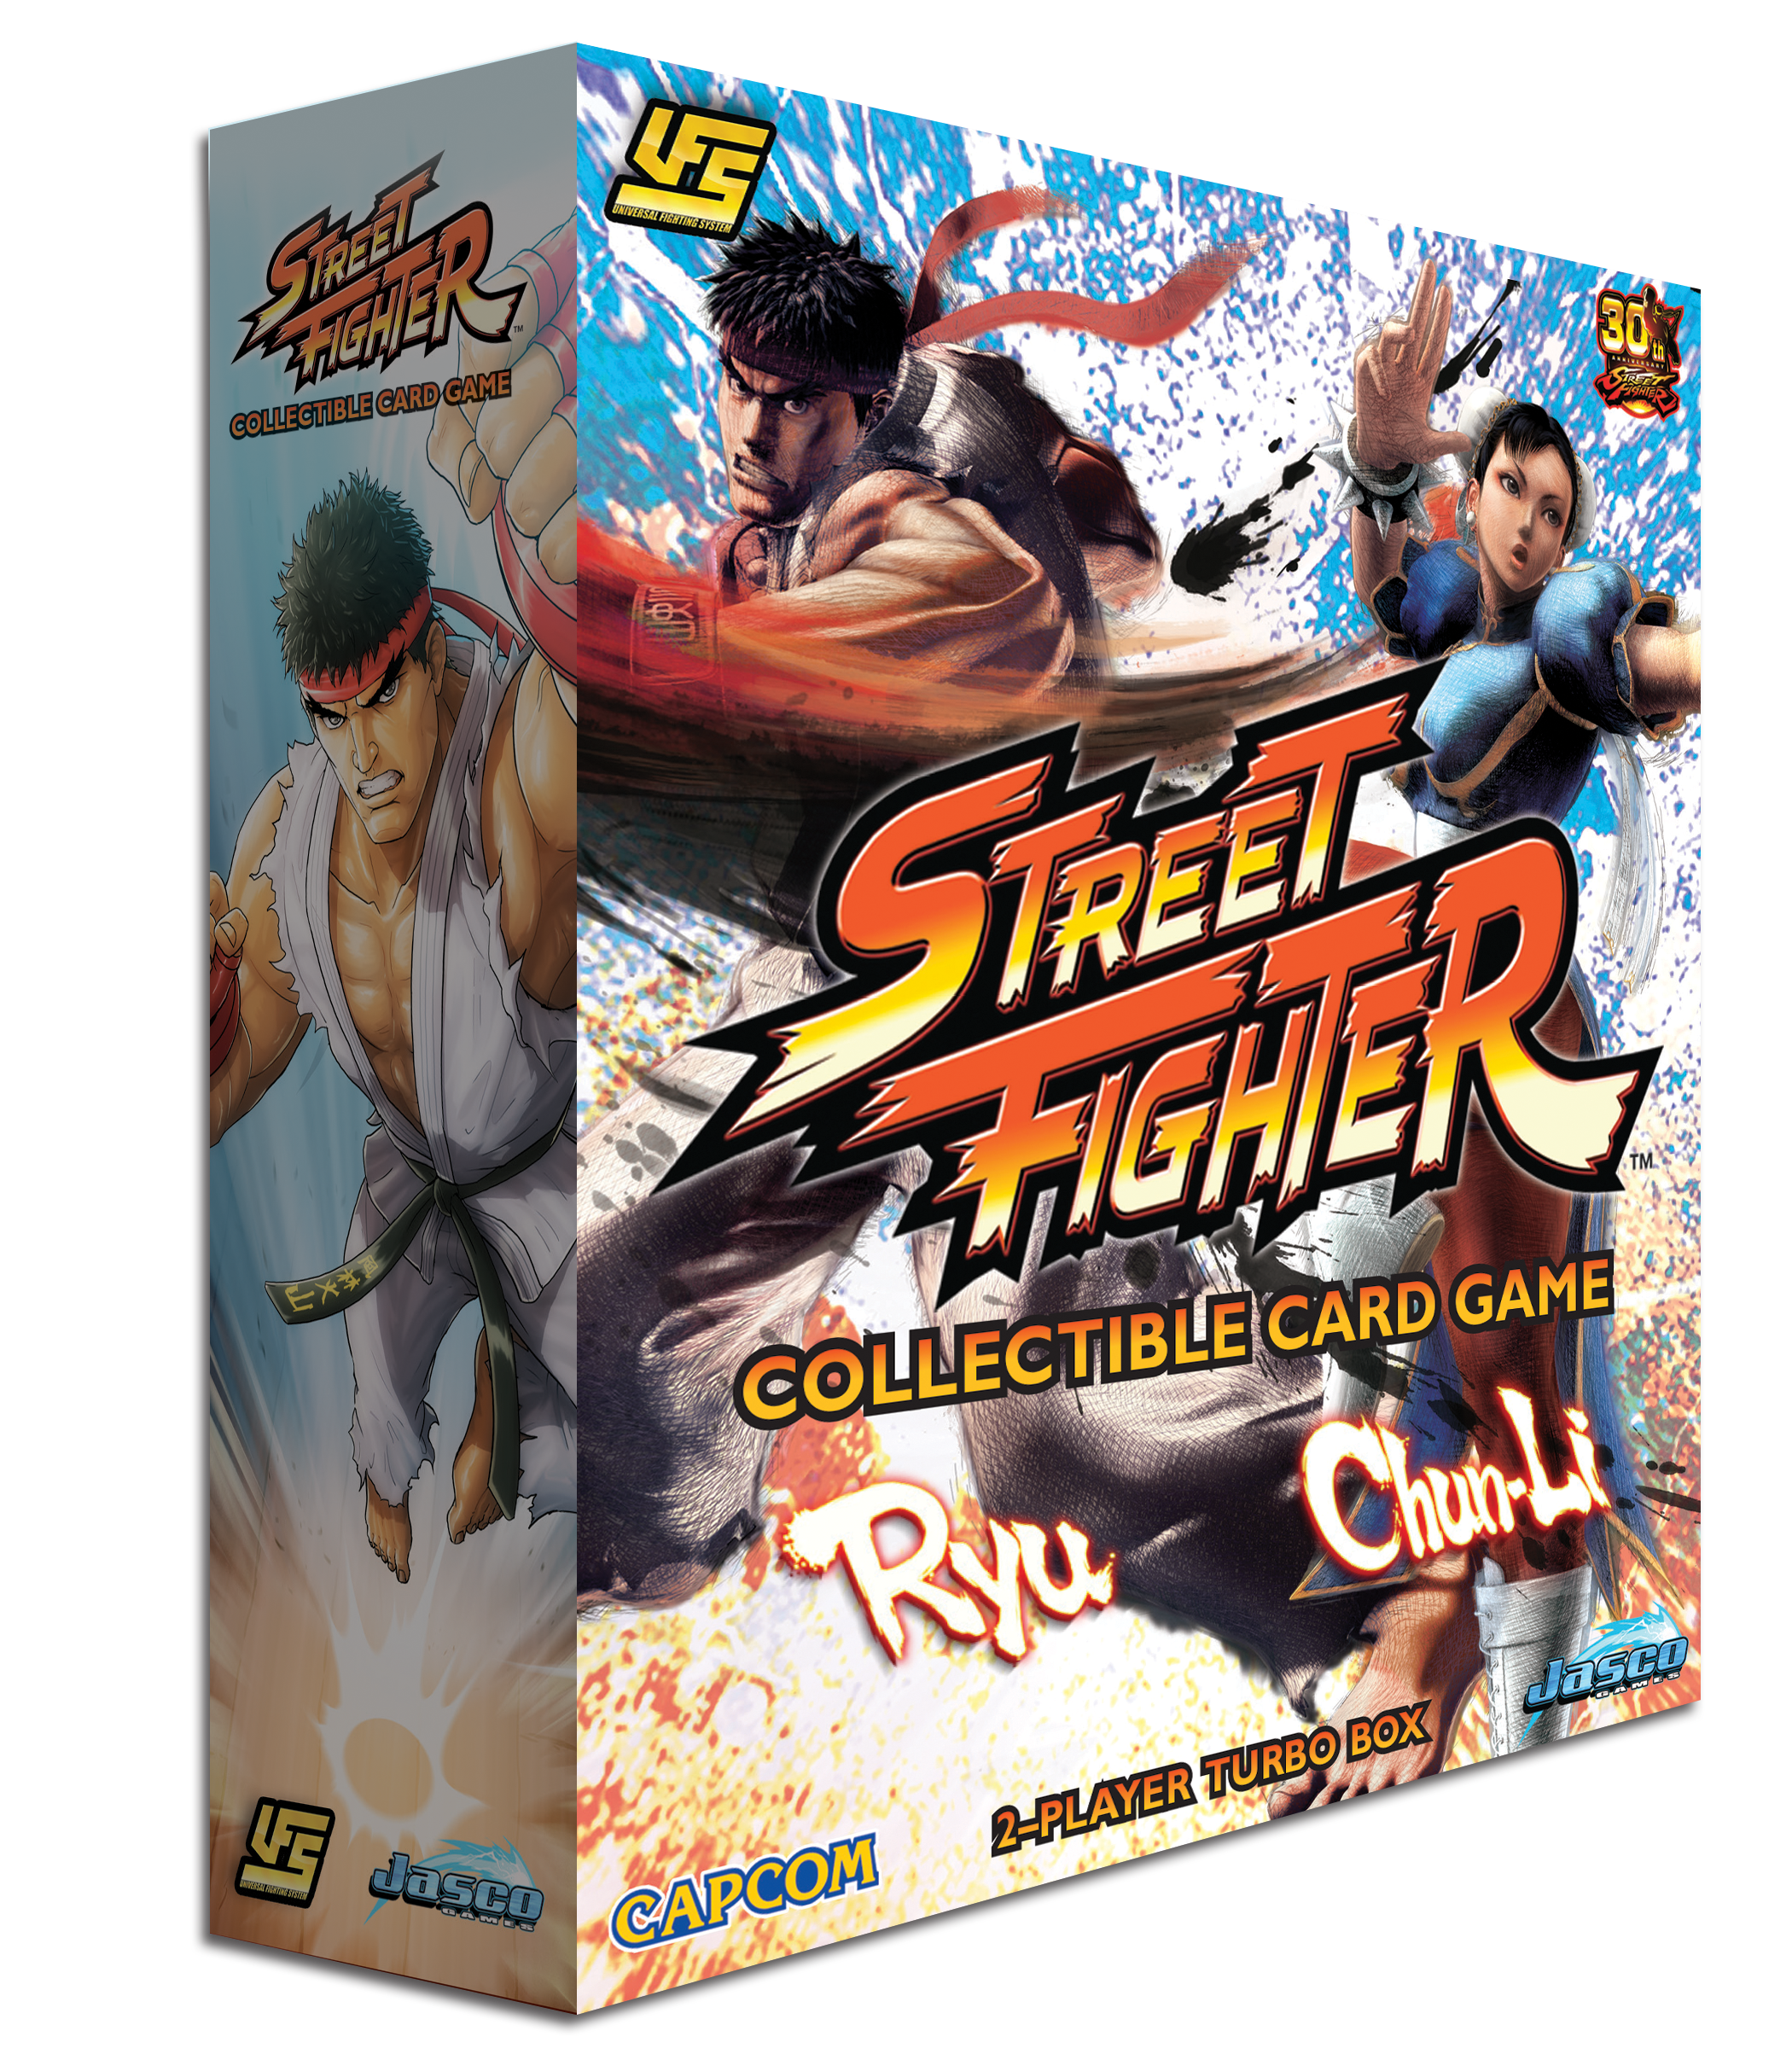 UFS CCG: Street Fighter CCG - Chun Li vs. Ryu 2-player Starter Pack